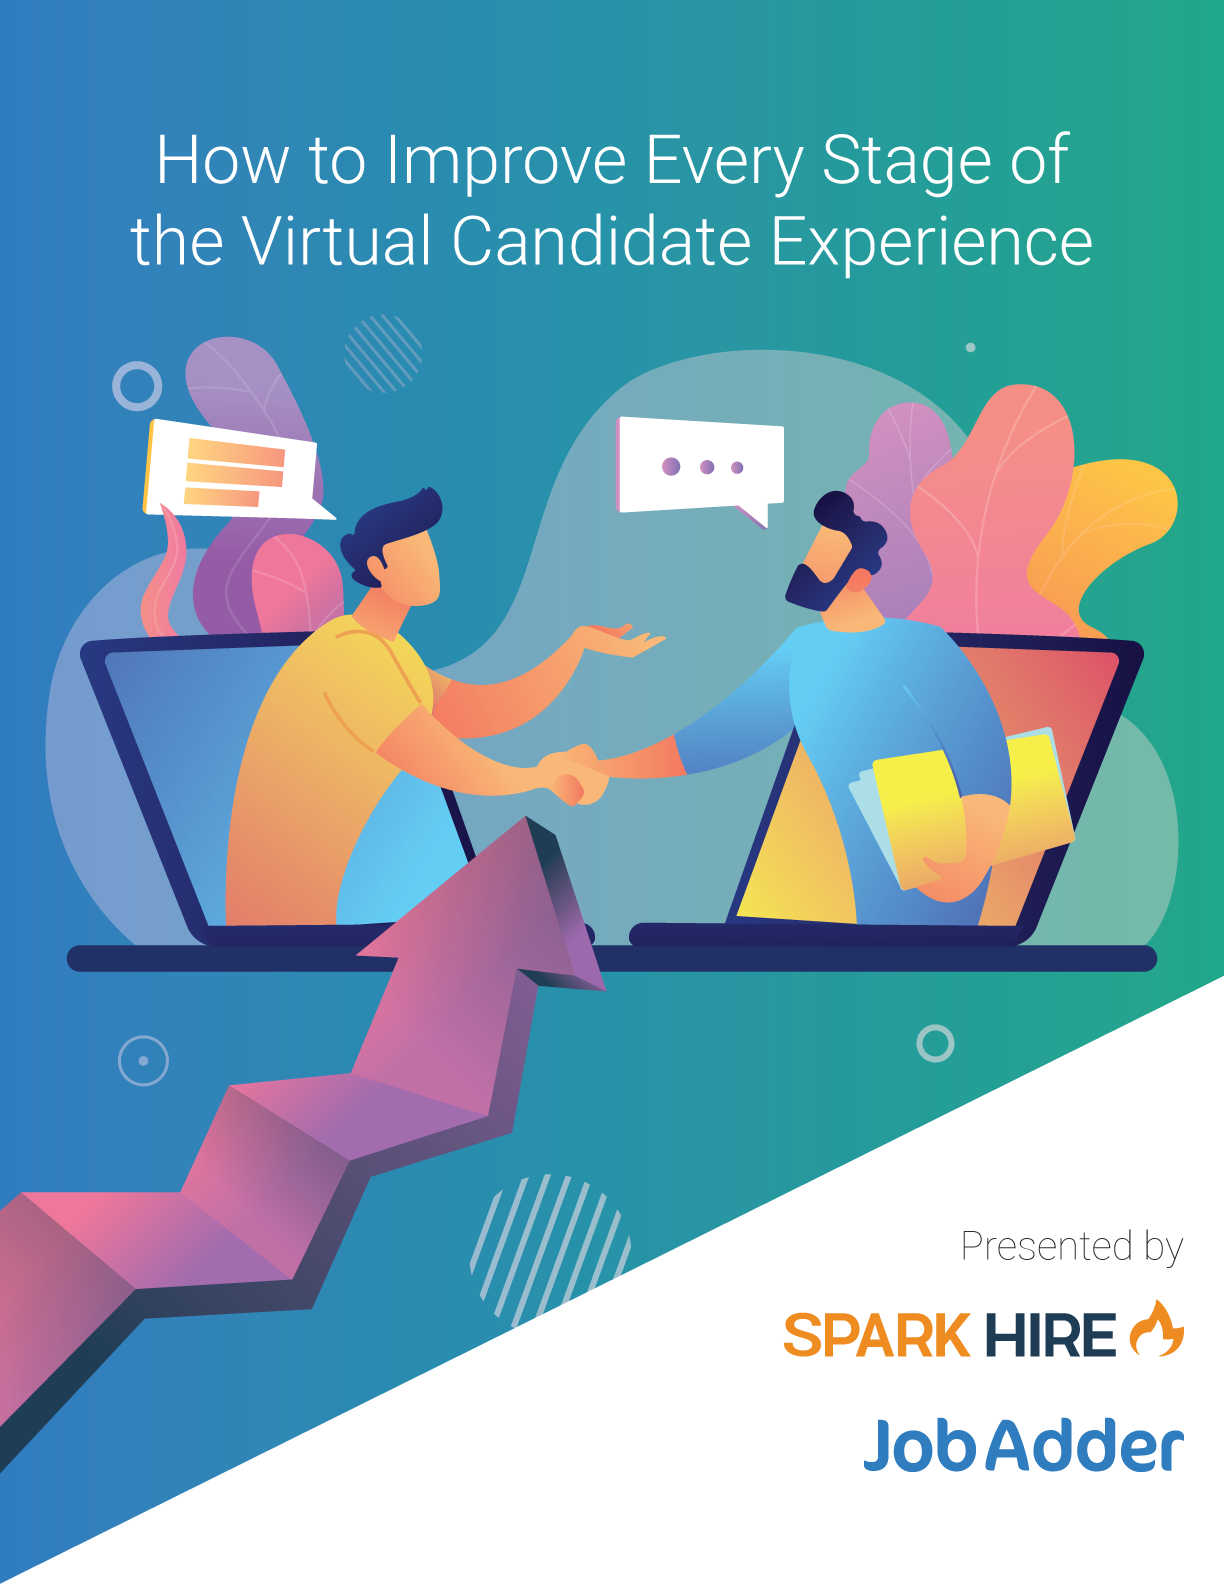 How to Improve Every Stage of the Virtual Candidate Experience